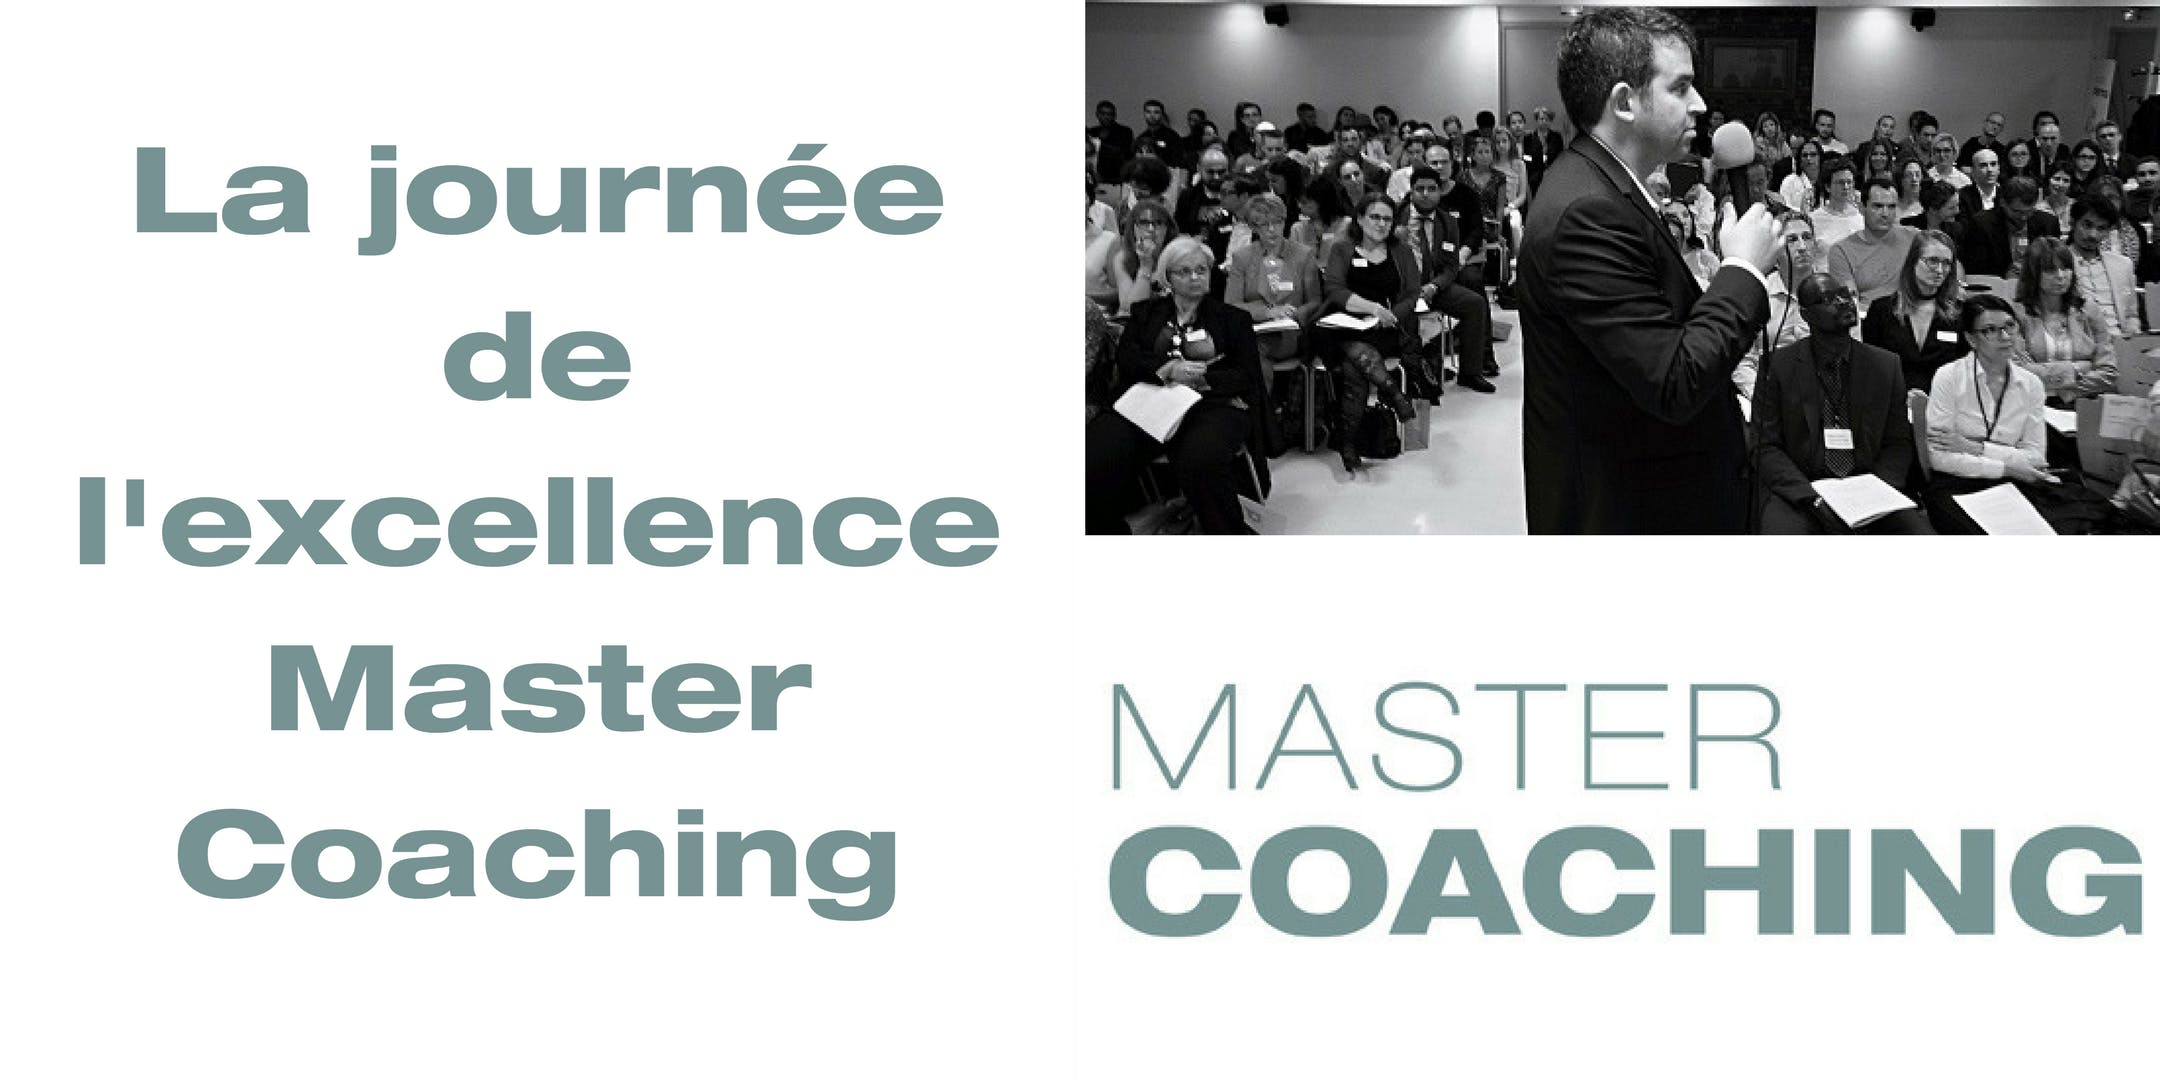 La journée de l'excellence Master Coaching Ma